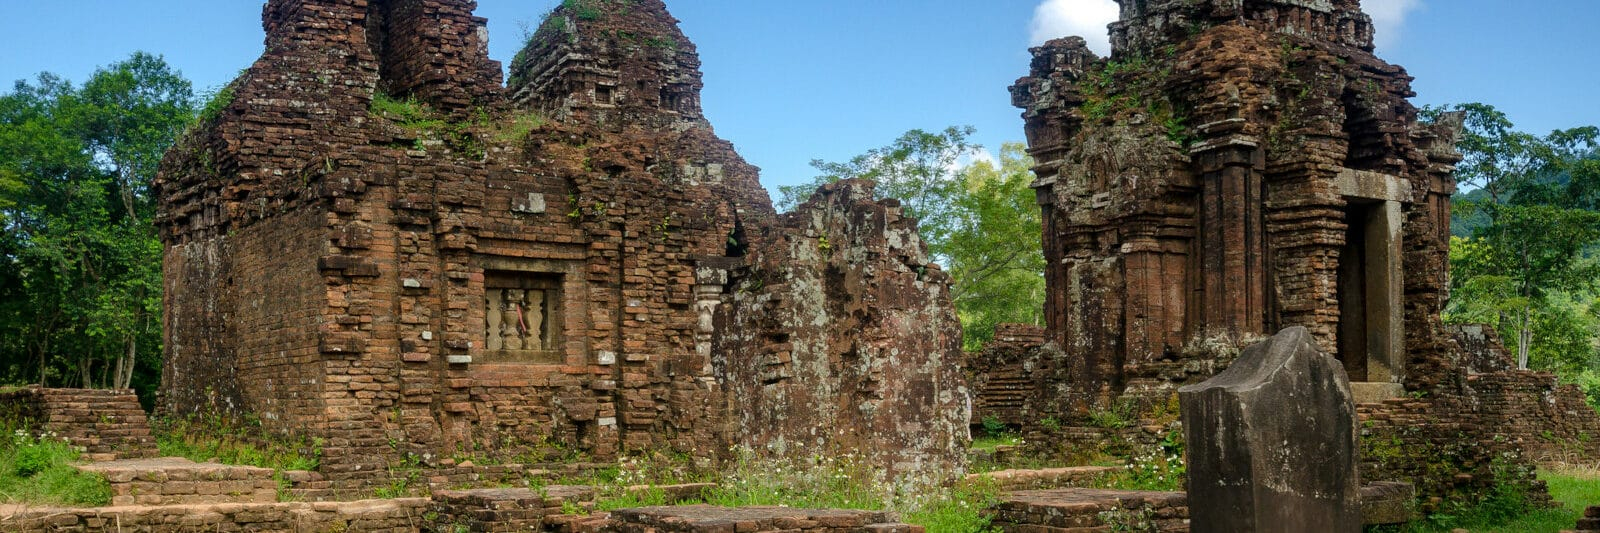 Image of remnants at the My Son Sanctuary in Hoi An, Vietnam